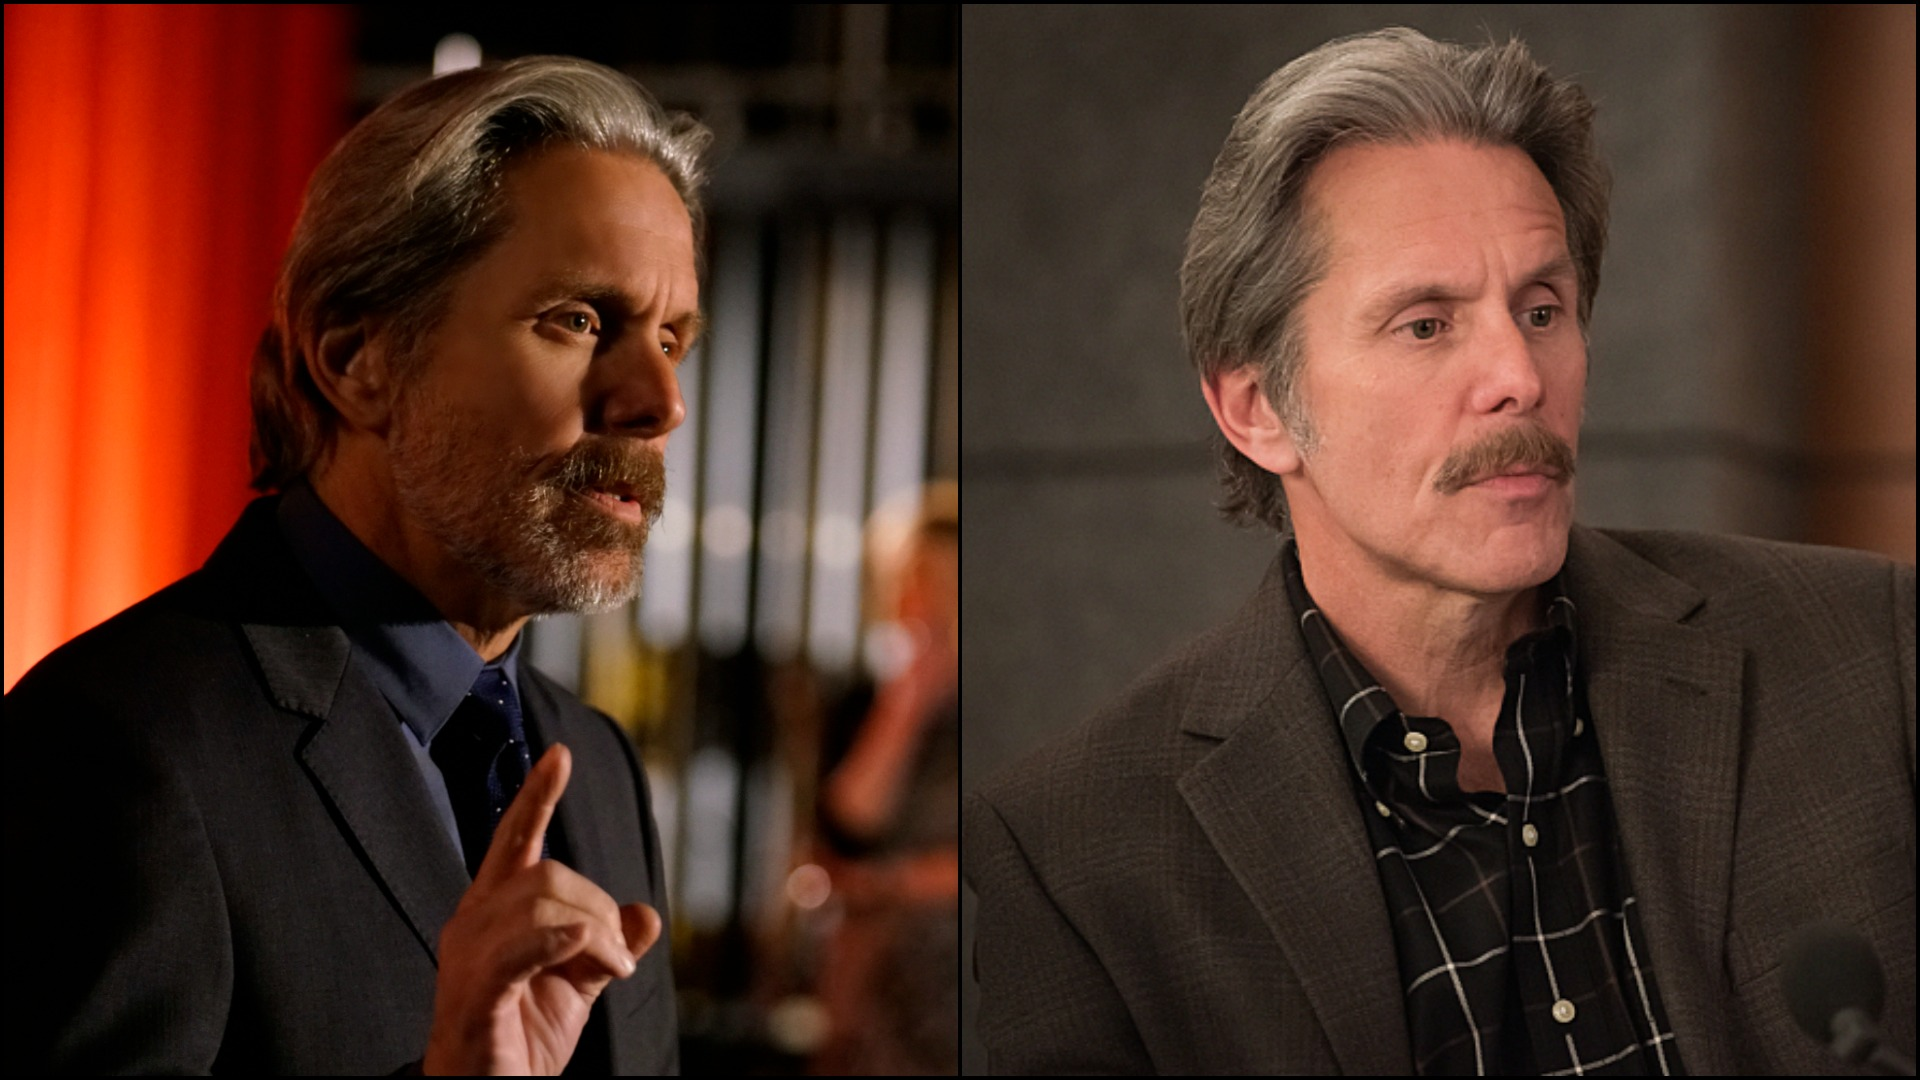 Gary Cole as Kurt McVeigh